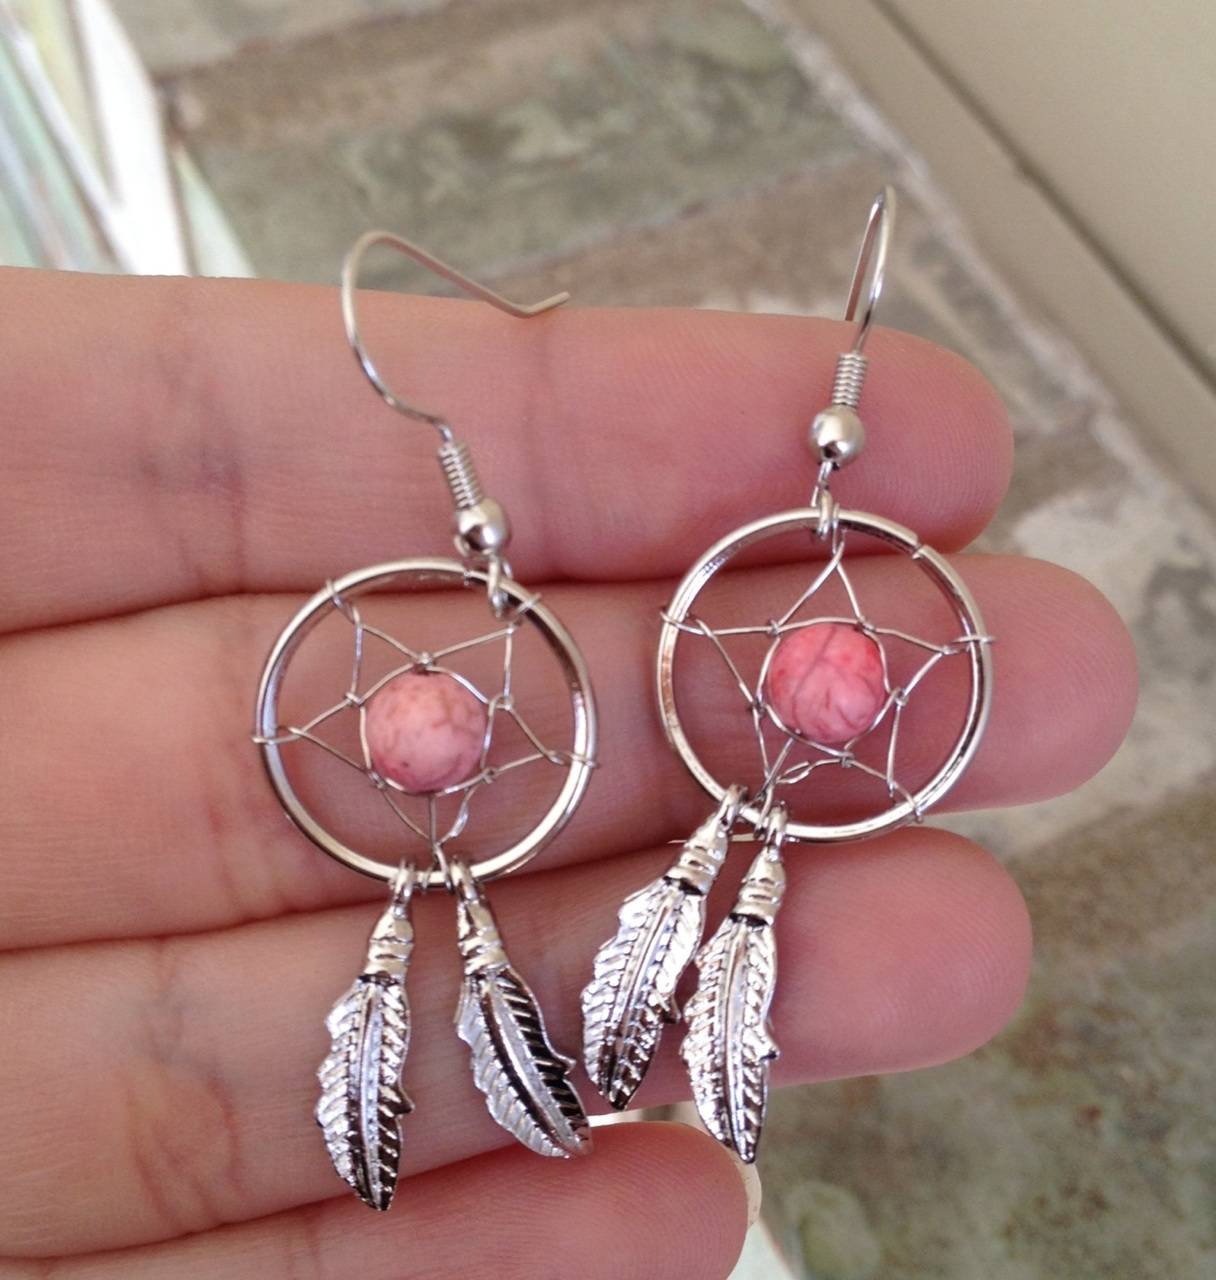 dream catcher earrings 183 country wind 183 online store